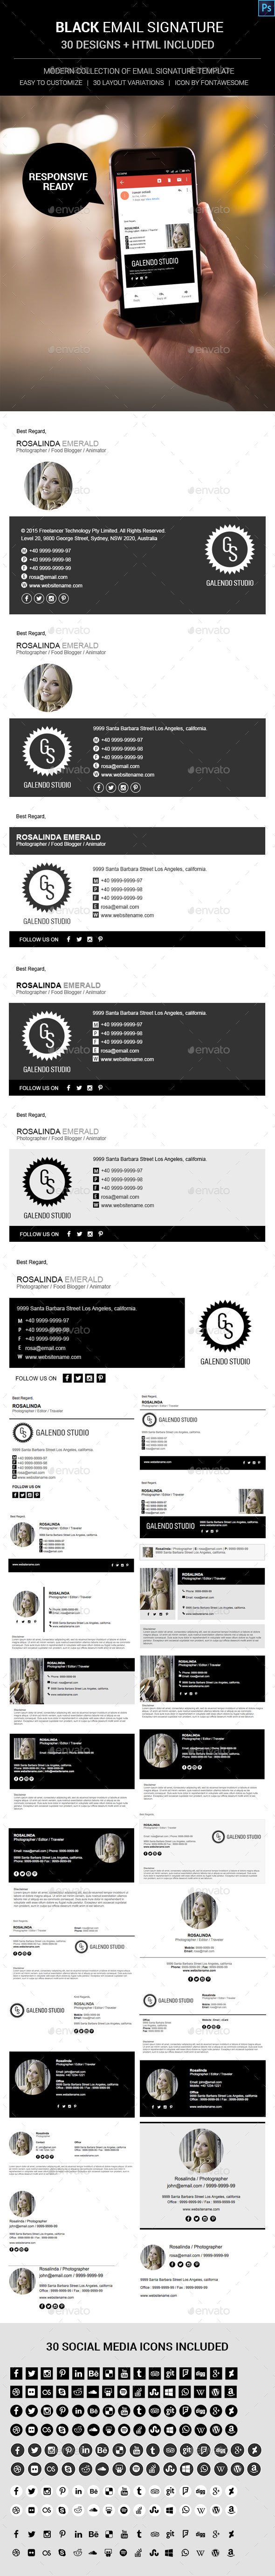 Black Email Signature | Email signatures, Graphics and Email ...